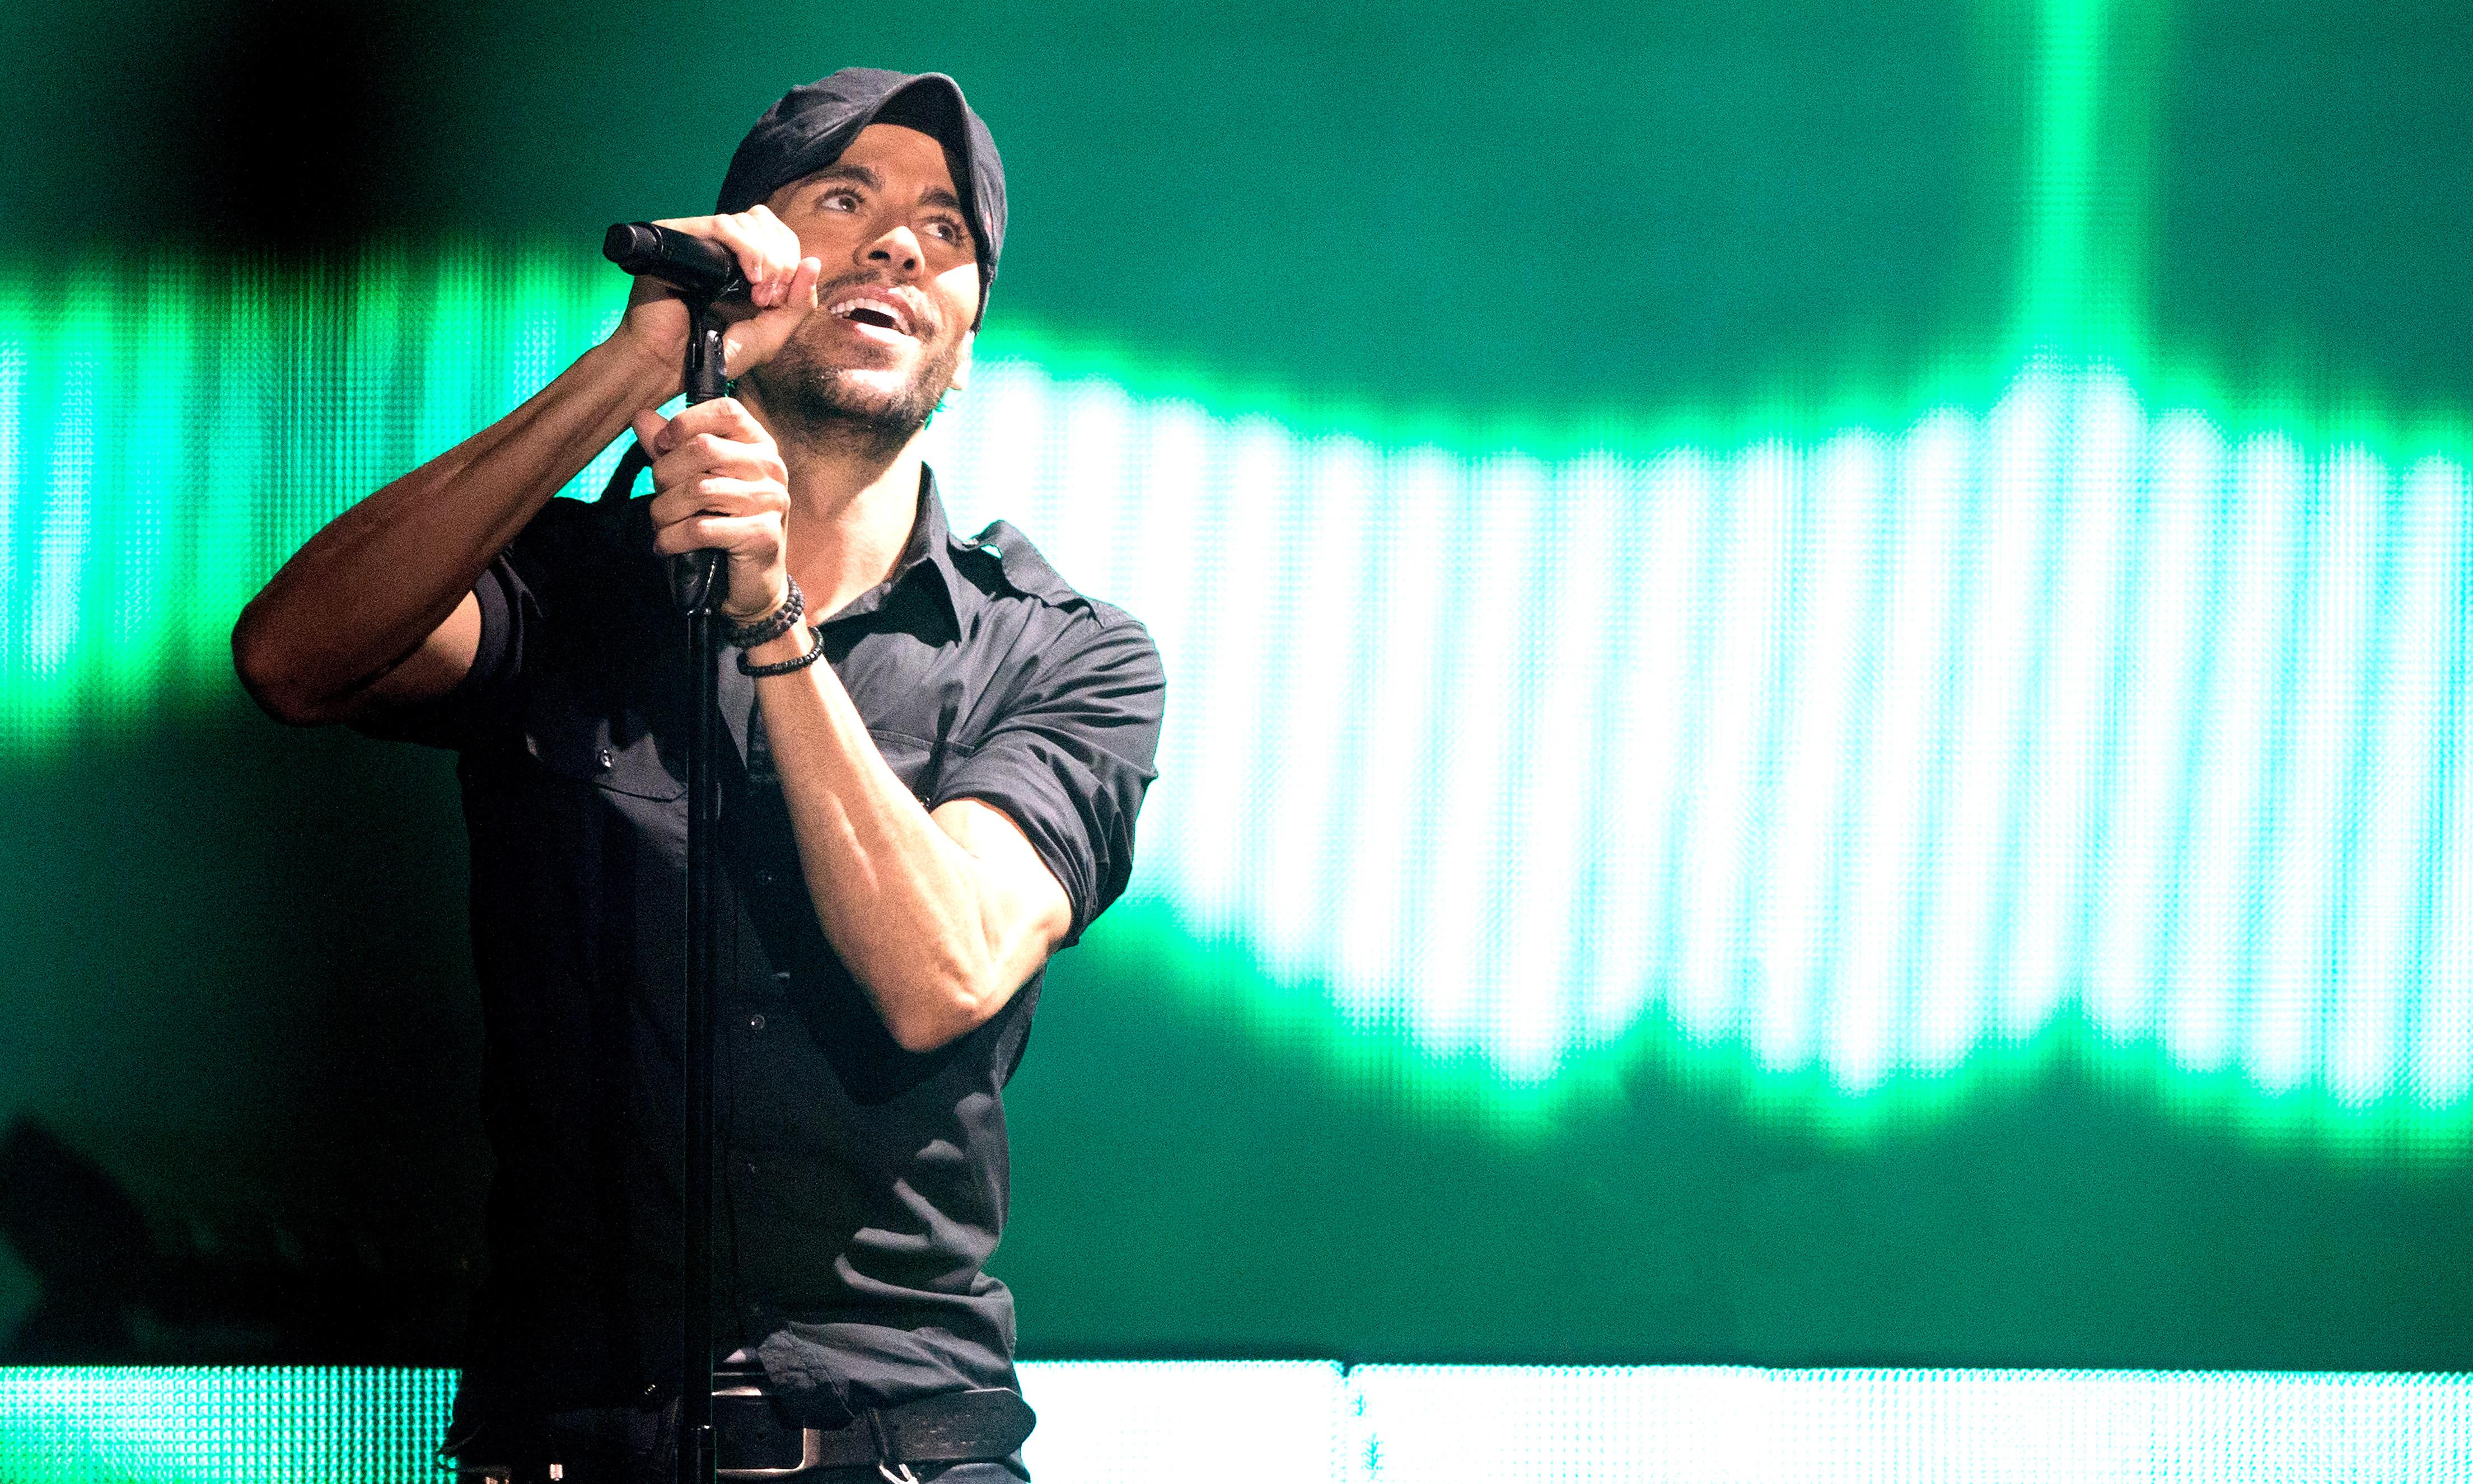 Enrique Iglesias review – charming crowdpleaser gives fans what they want